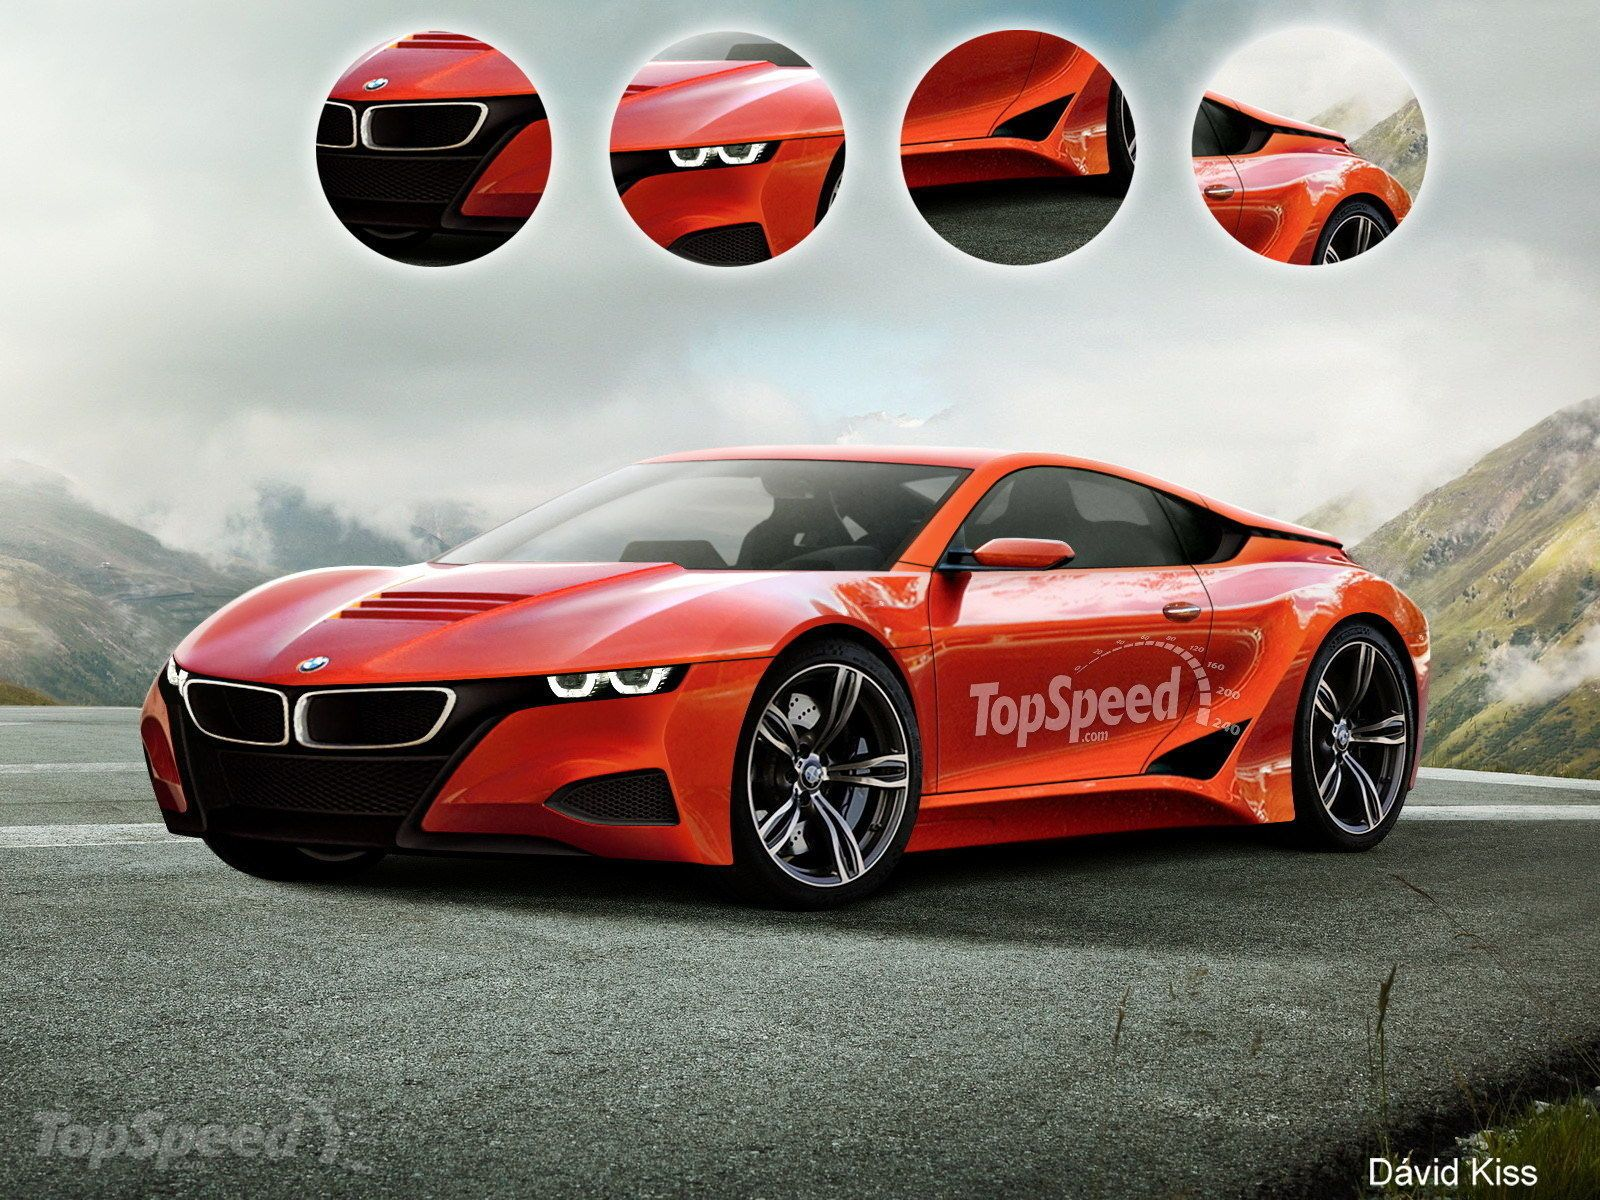 Rumor Bmw M8 Supercar With 630 Hp Coming In 2018 Super Cars Bmw Bmw Supercar